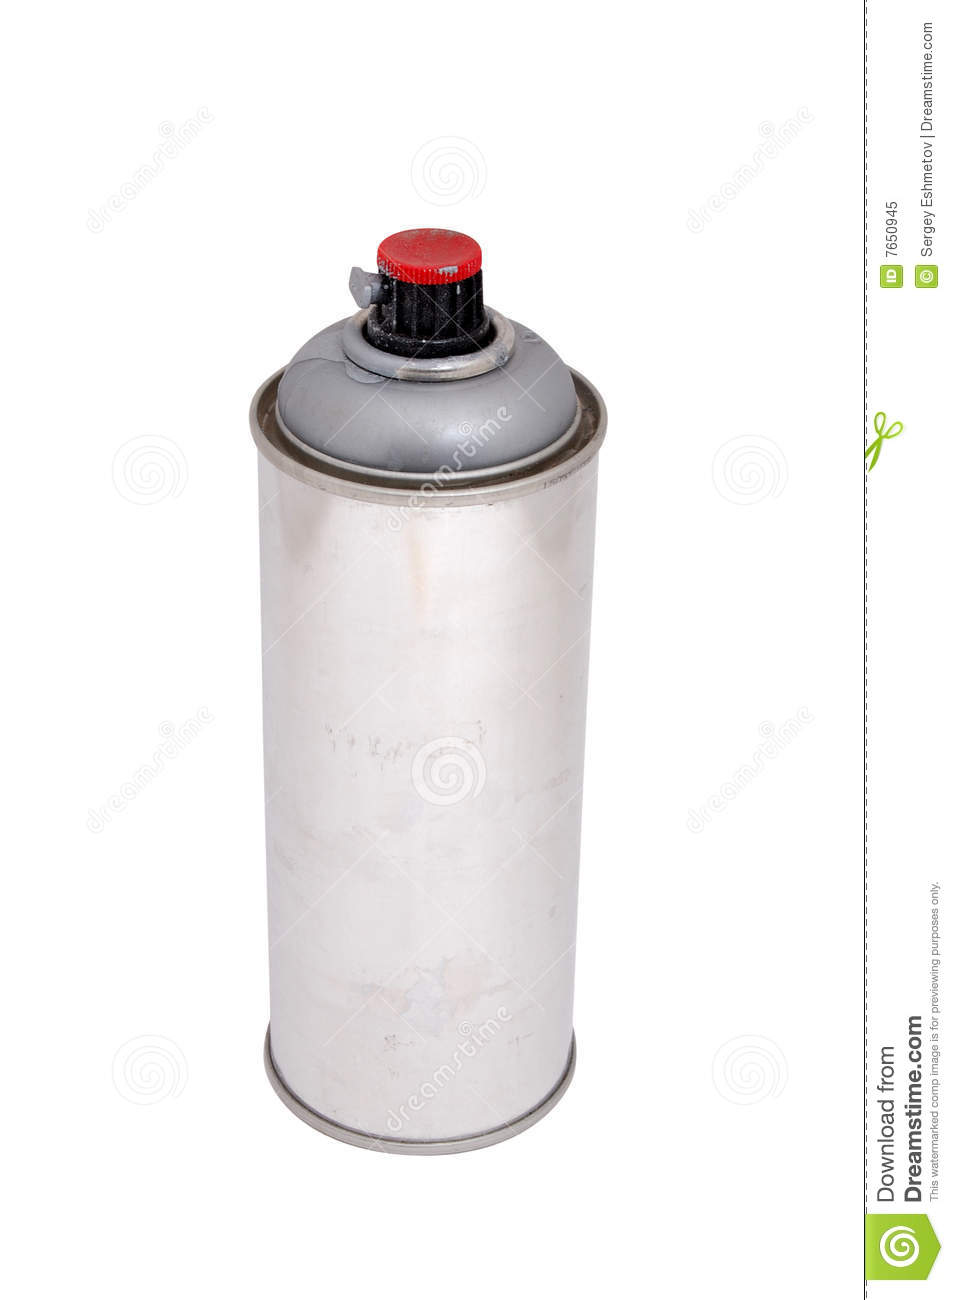 Spray Can Royalty Free Stock Photo - Image: 7650945